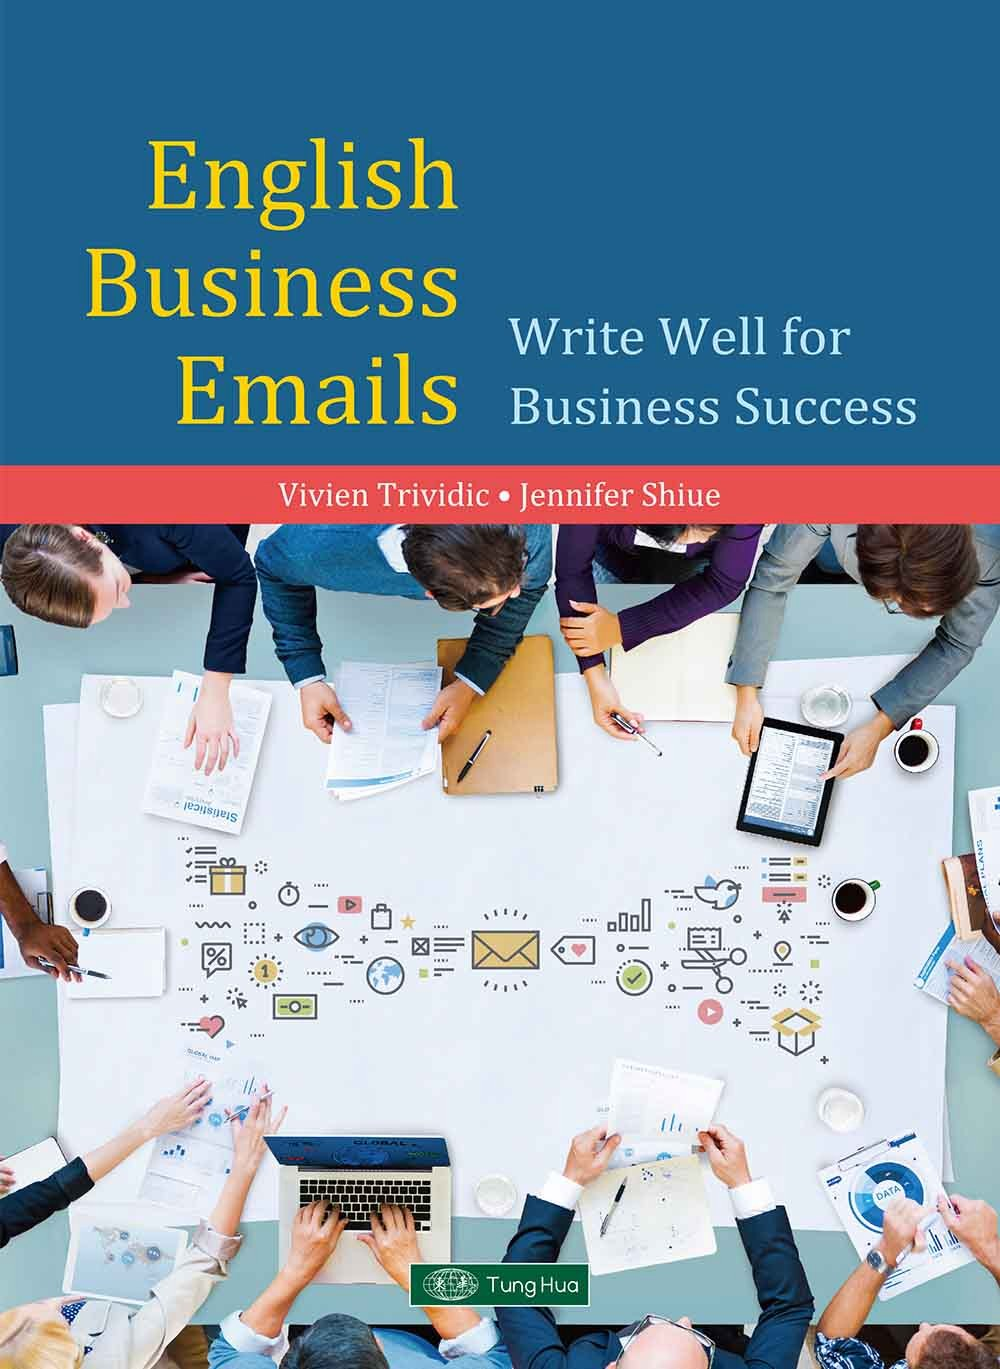 English Business Emails: Write Well for Business Success